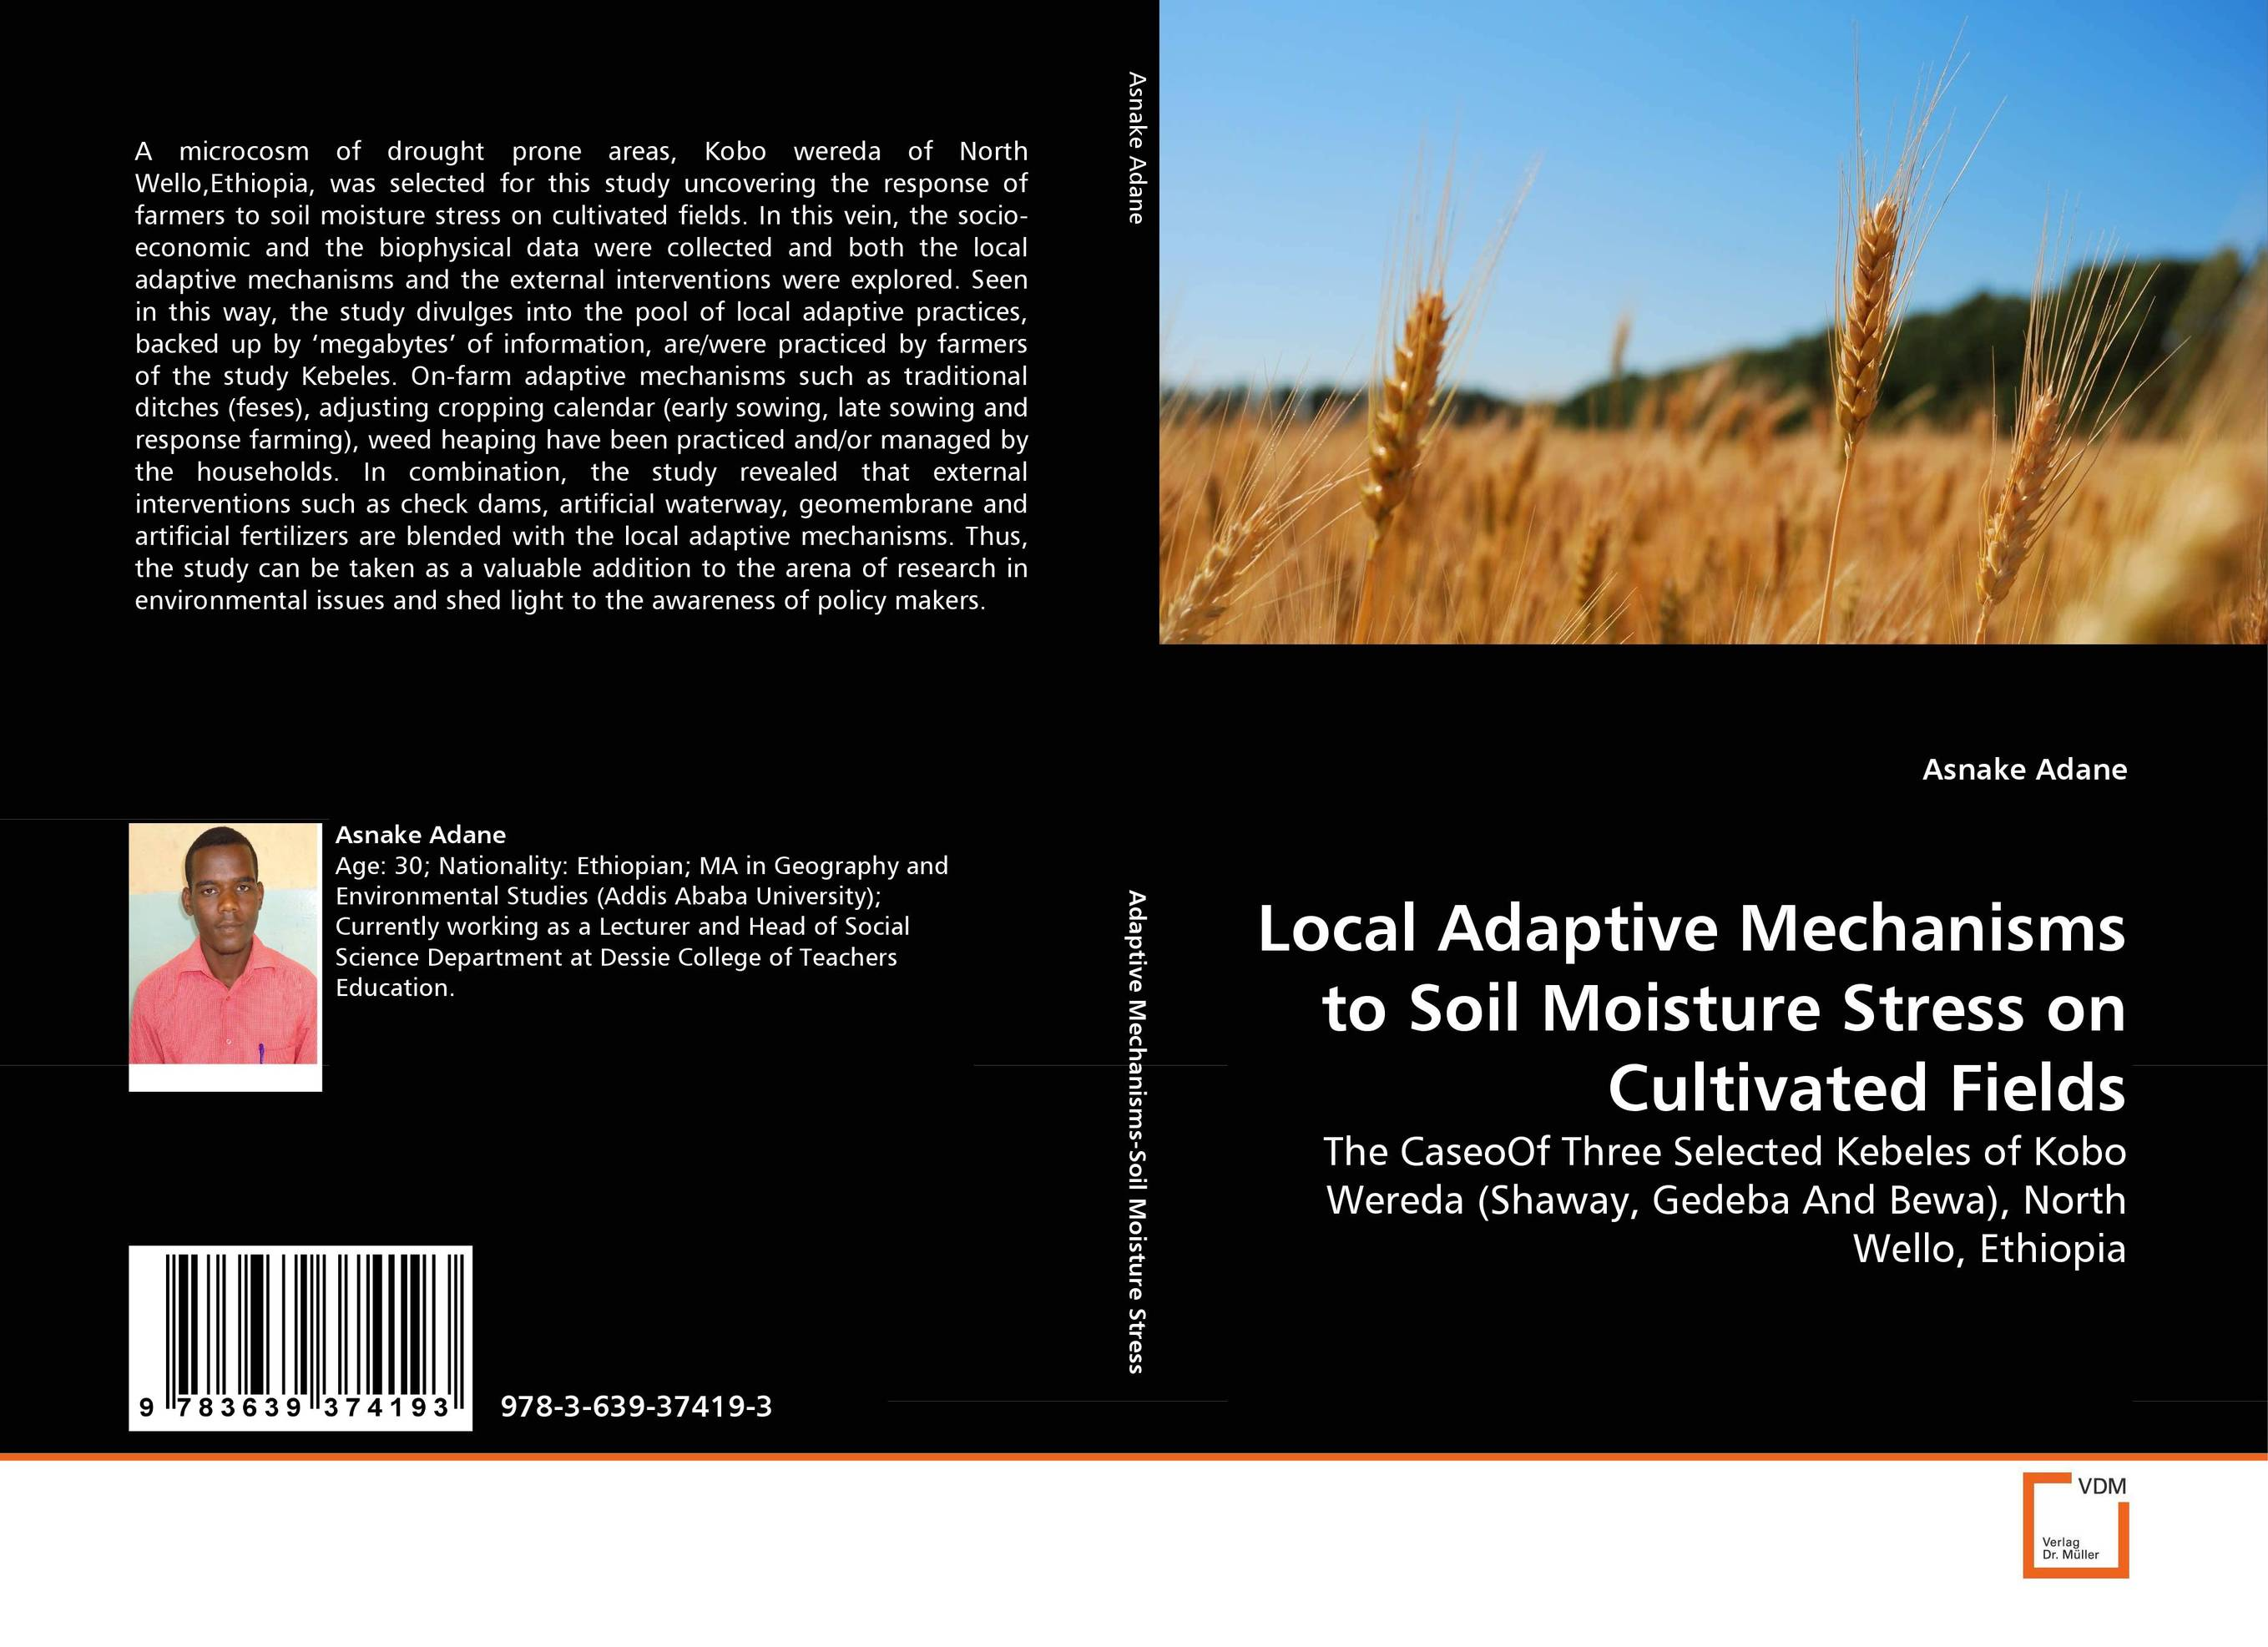 Local Adaptive Mechanisms to Soil Moisture Stress on Cultivated Fields